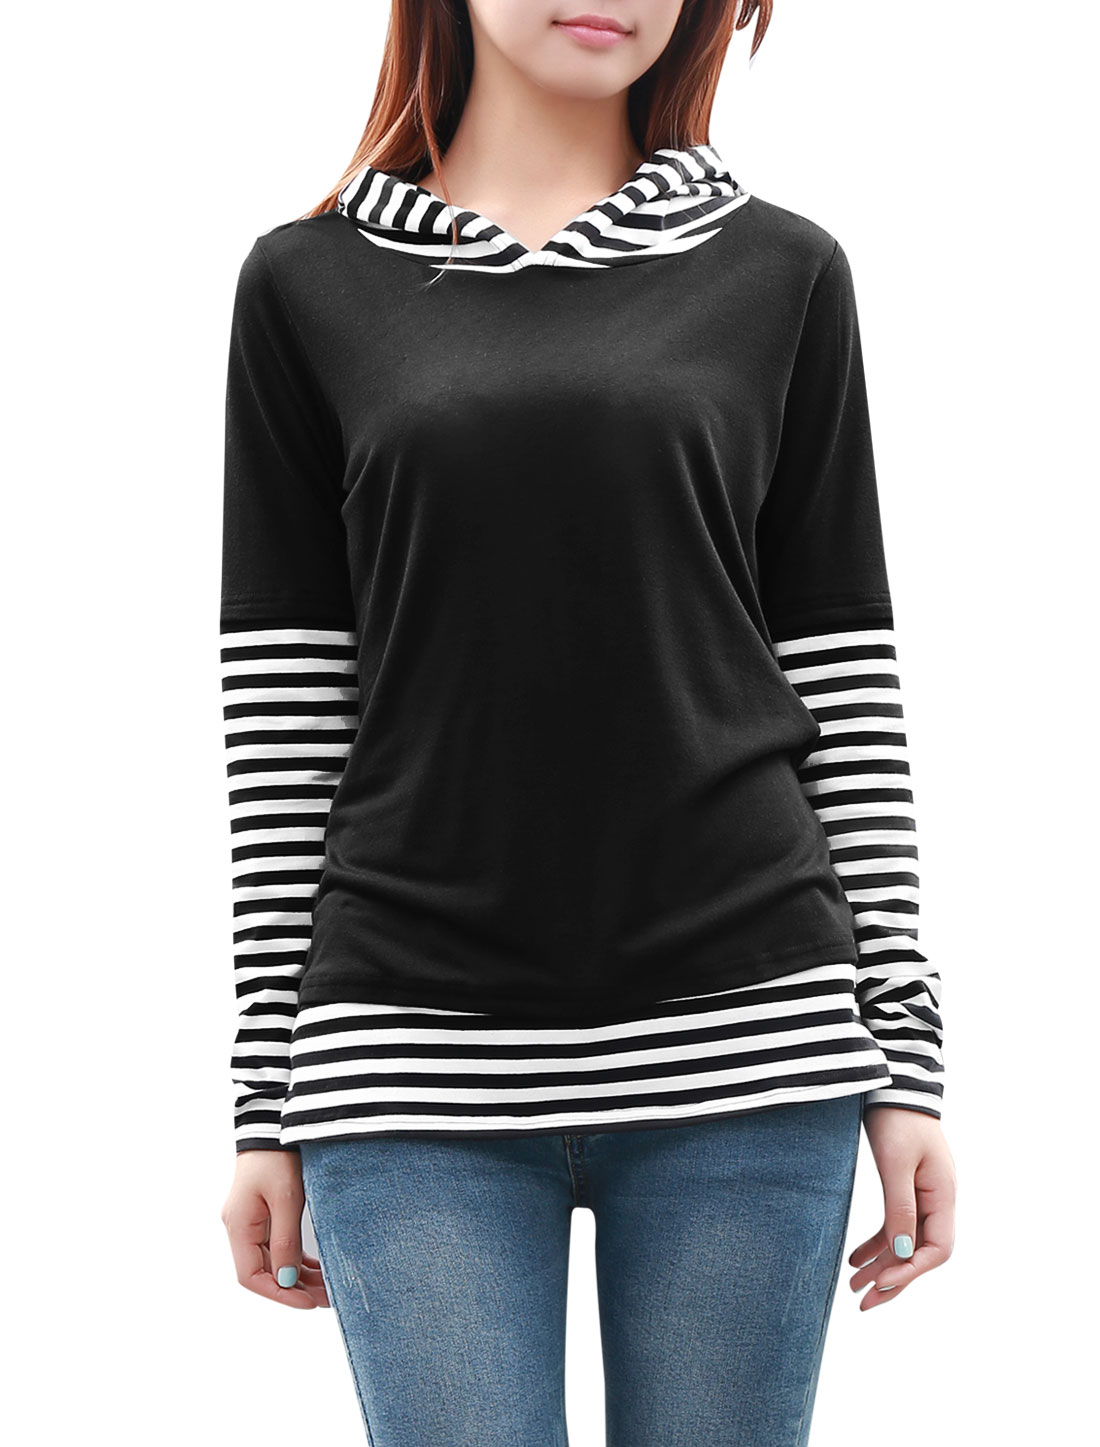 Woman Chic Stripes Pattern Black White Hooded Top Shirt S